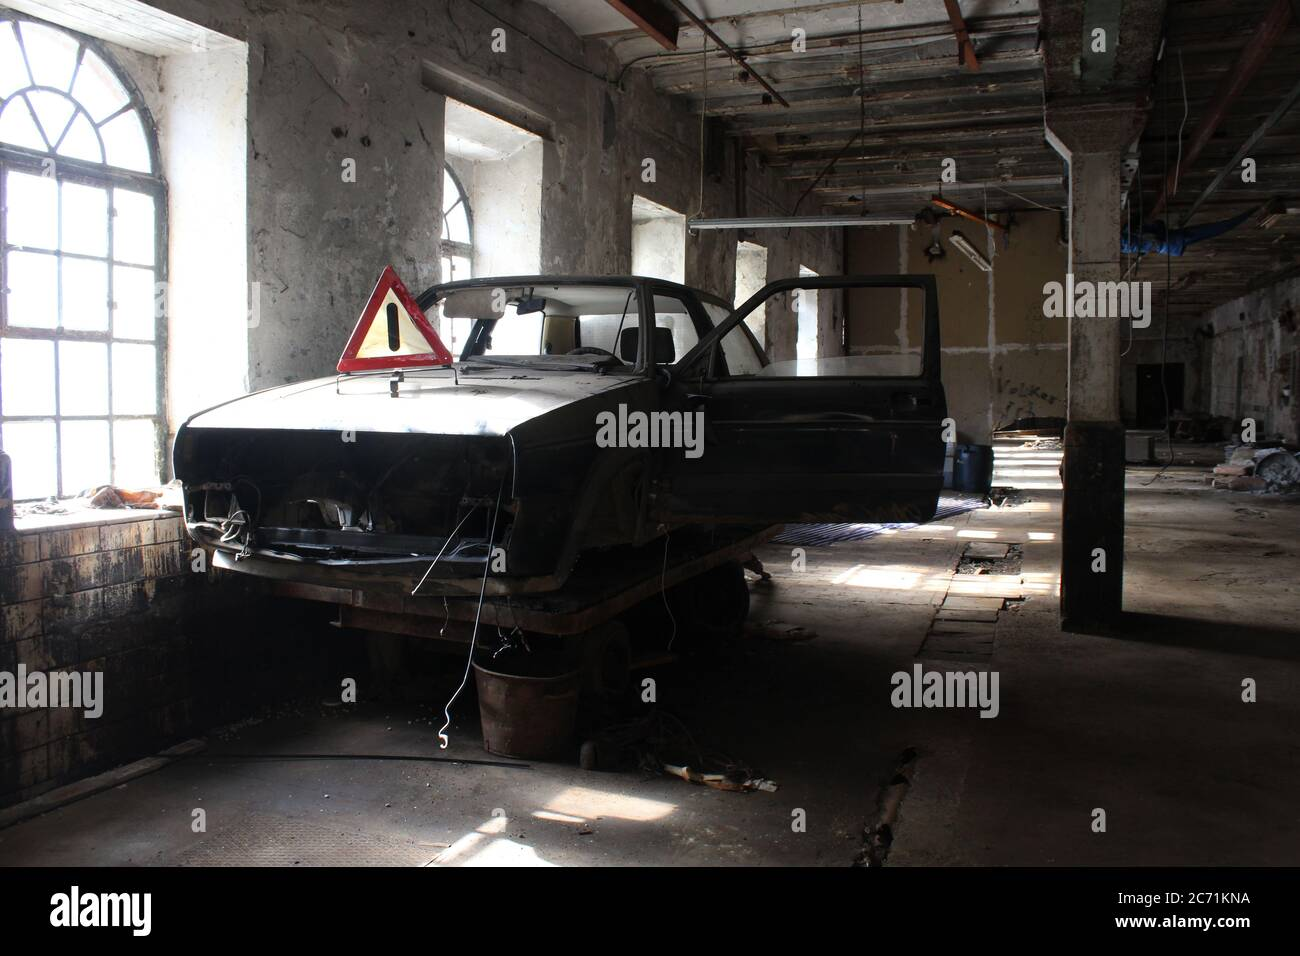 Dusty Volkswagen Golf II wreckage in an old industry facility in Altena, NRW, Germany, with a Warndreieck (warning triangle) on its engine hood. Stock Photo